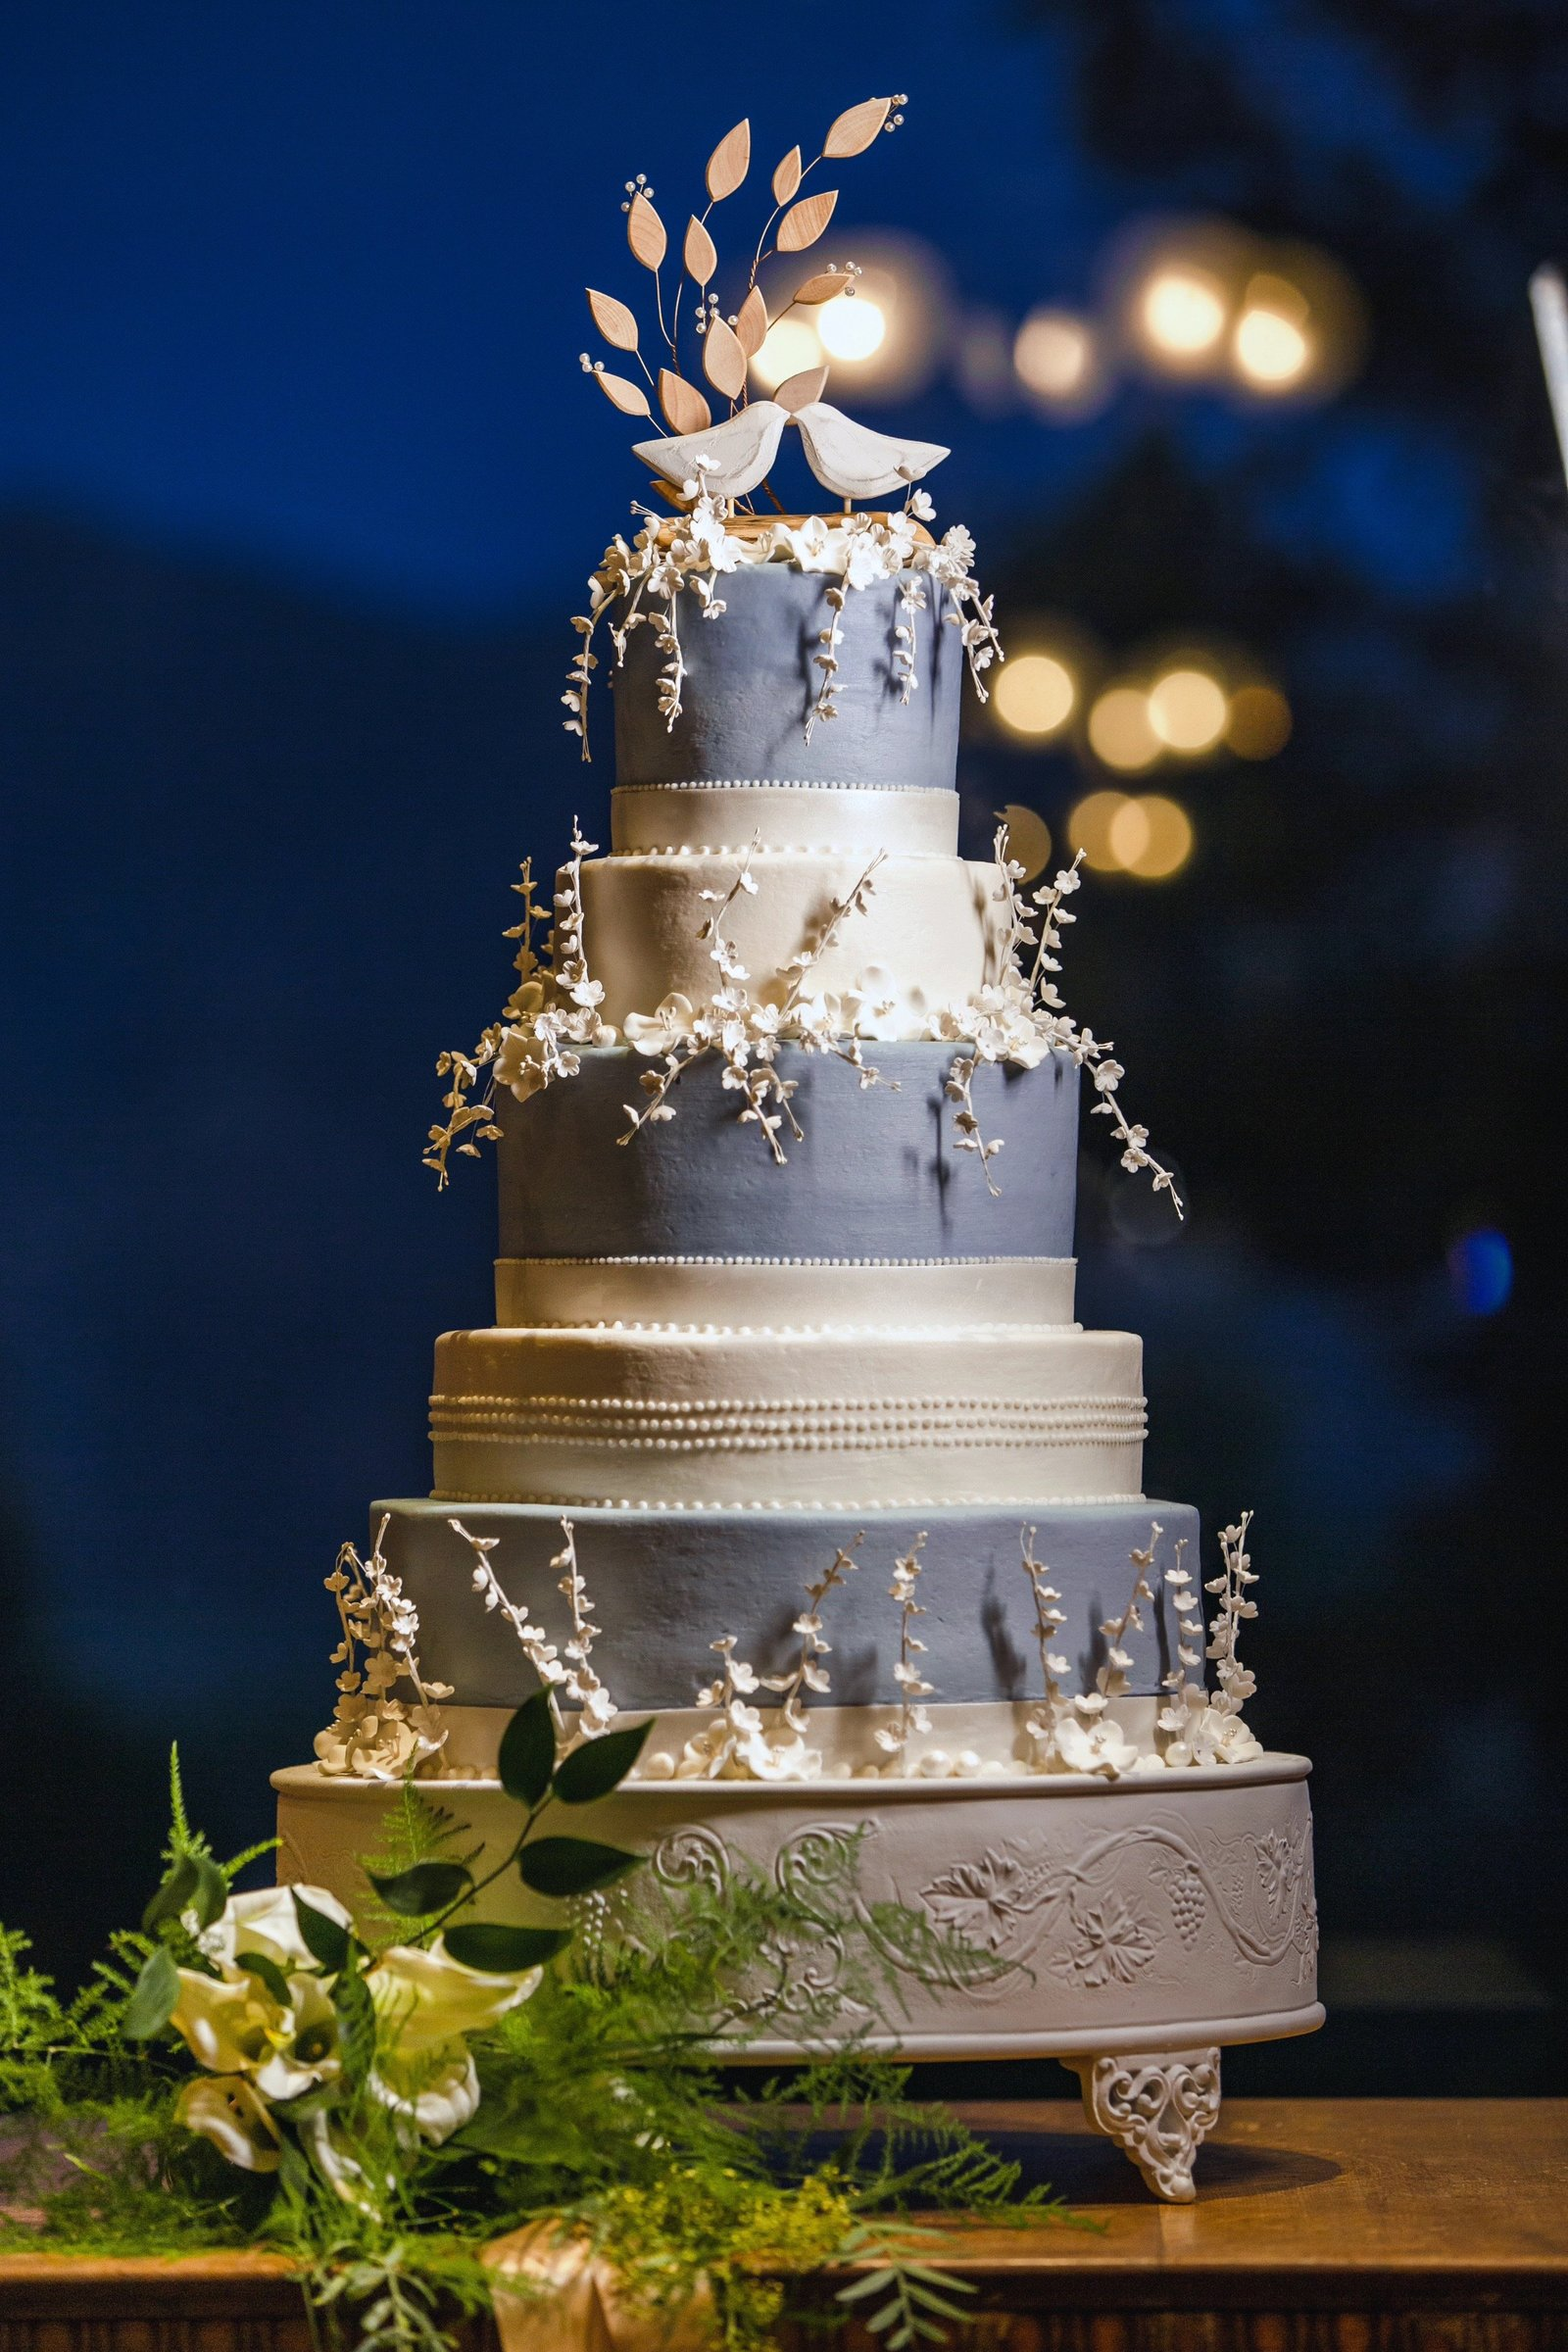 newhall mansion wedding cake by jill's wedding cakes